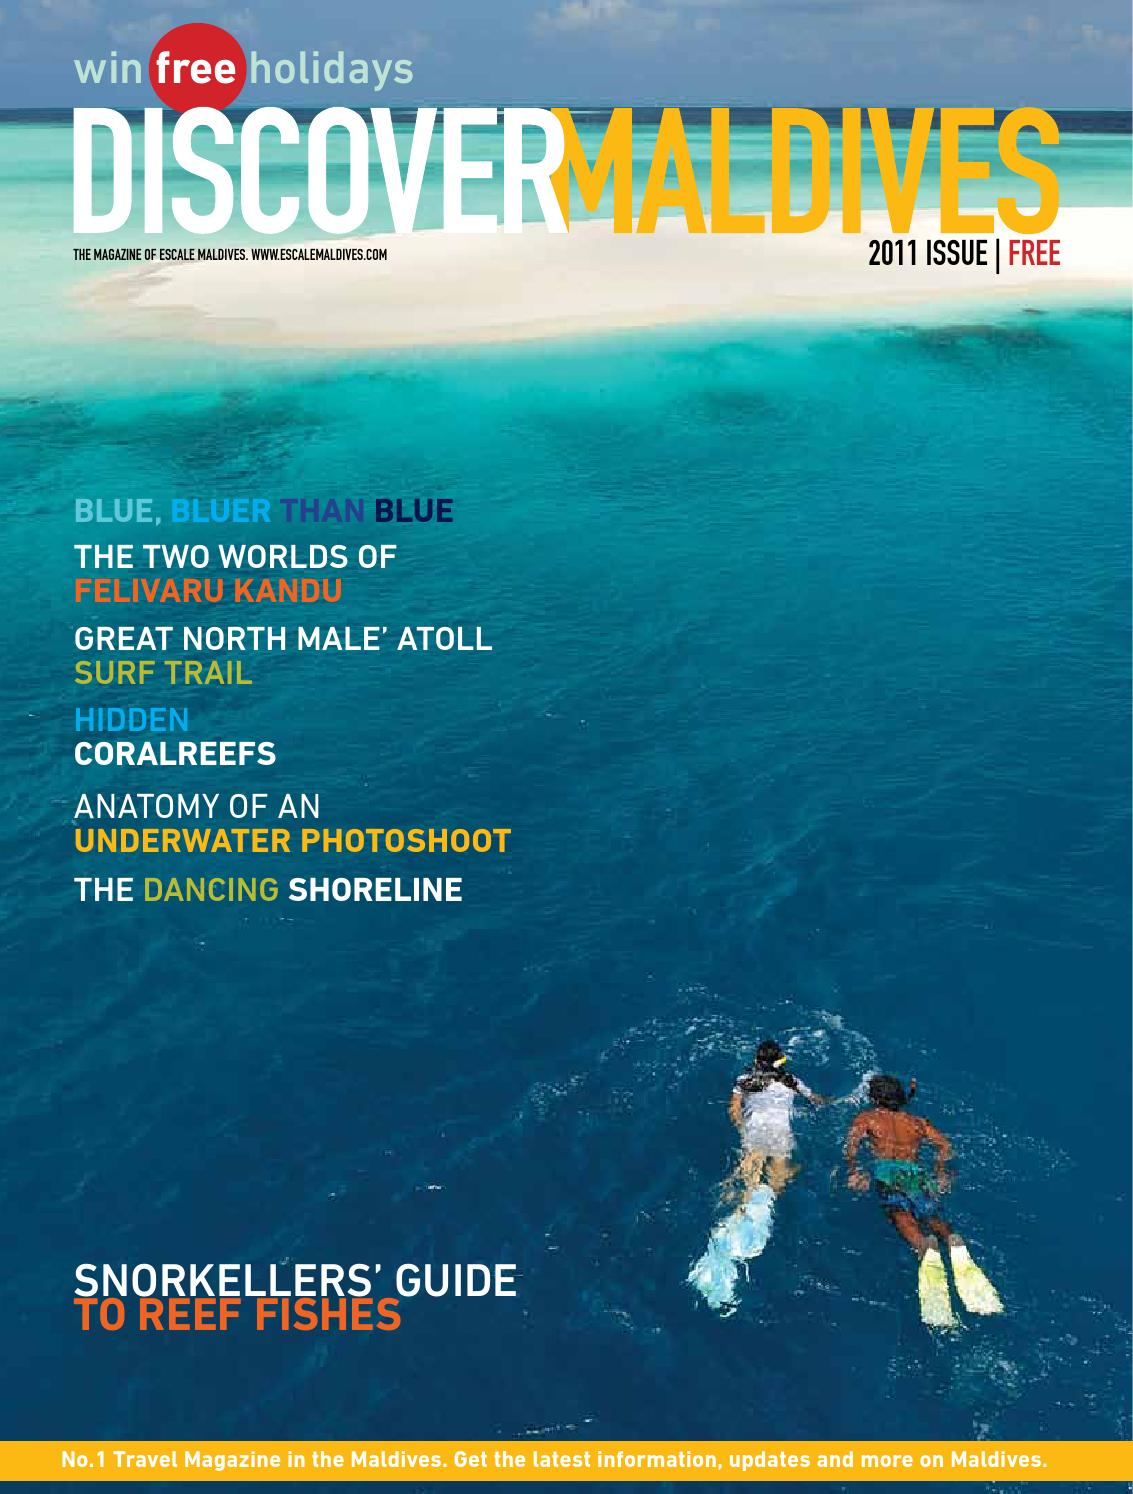 Discover Maldives Magazine 2011 Issue By Atoll Images Issuu Locklock Family Lunch Abu Hpl823dg